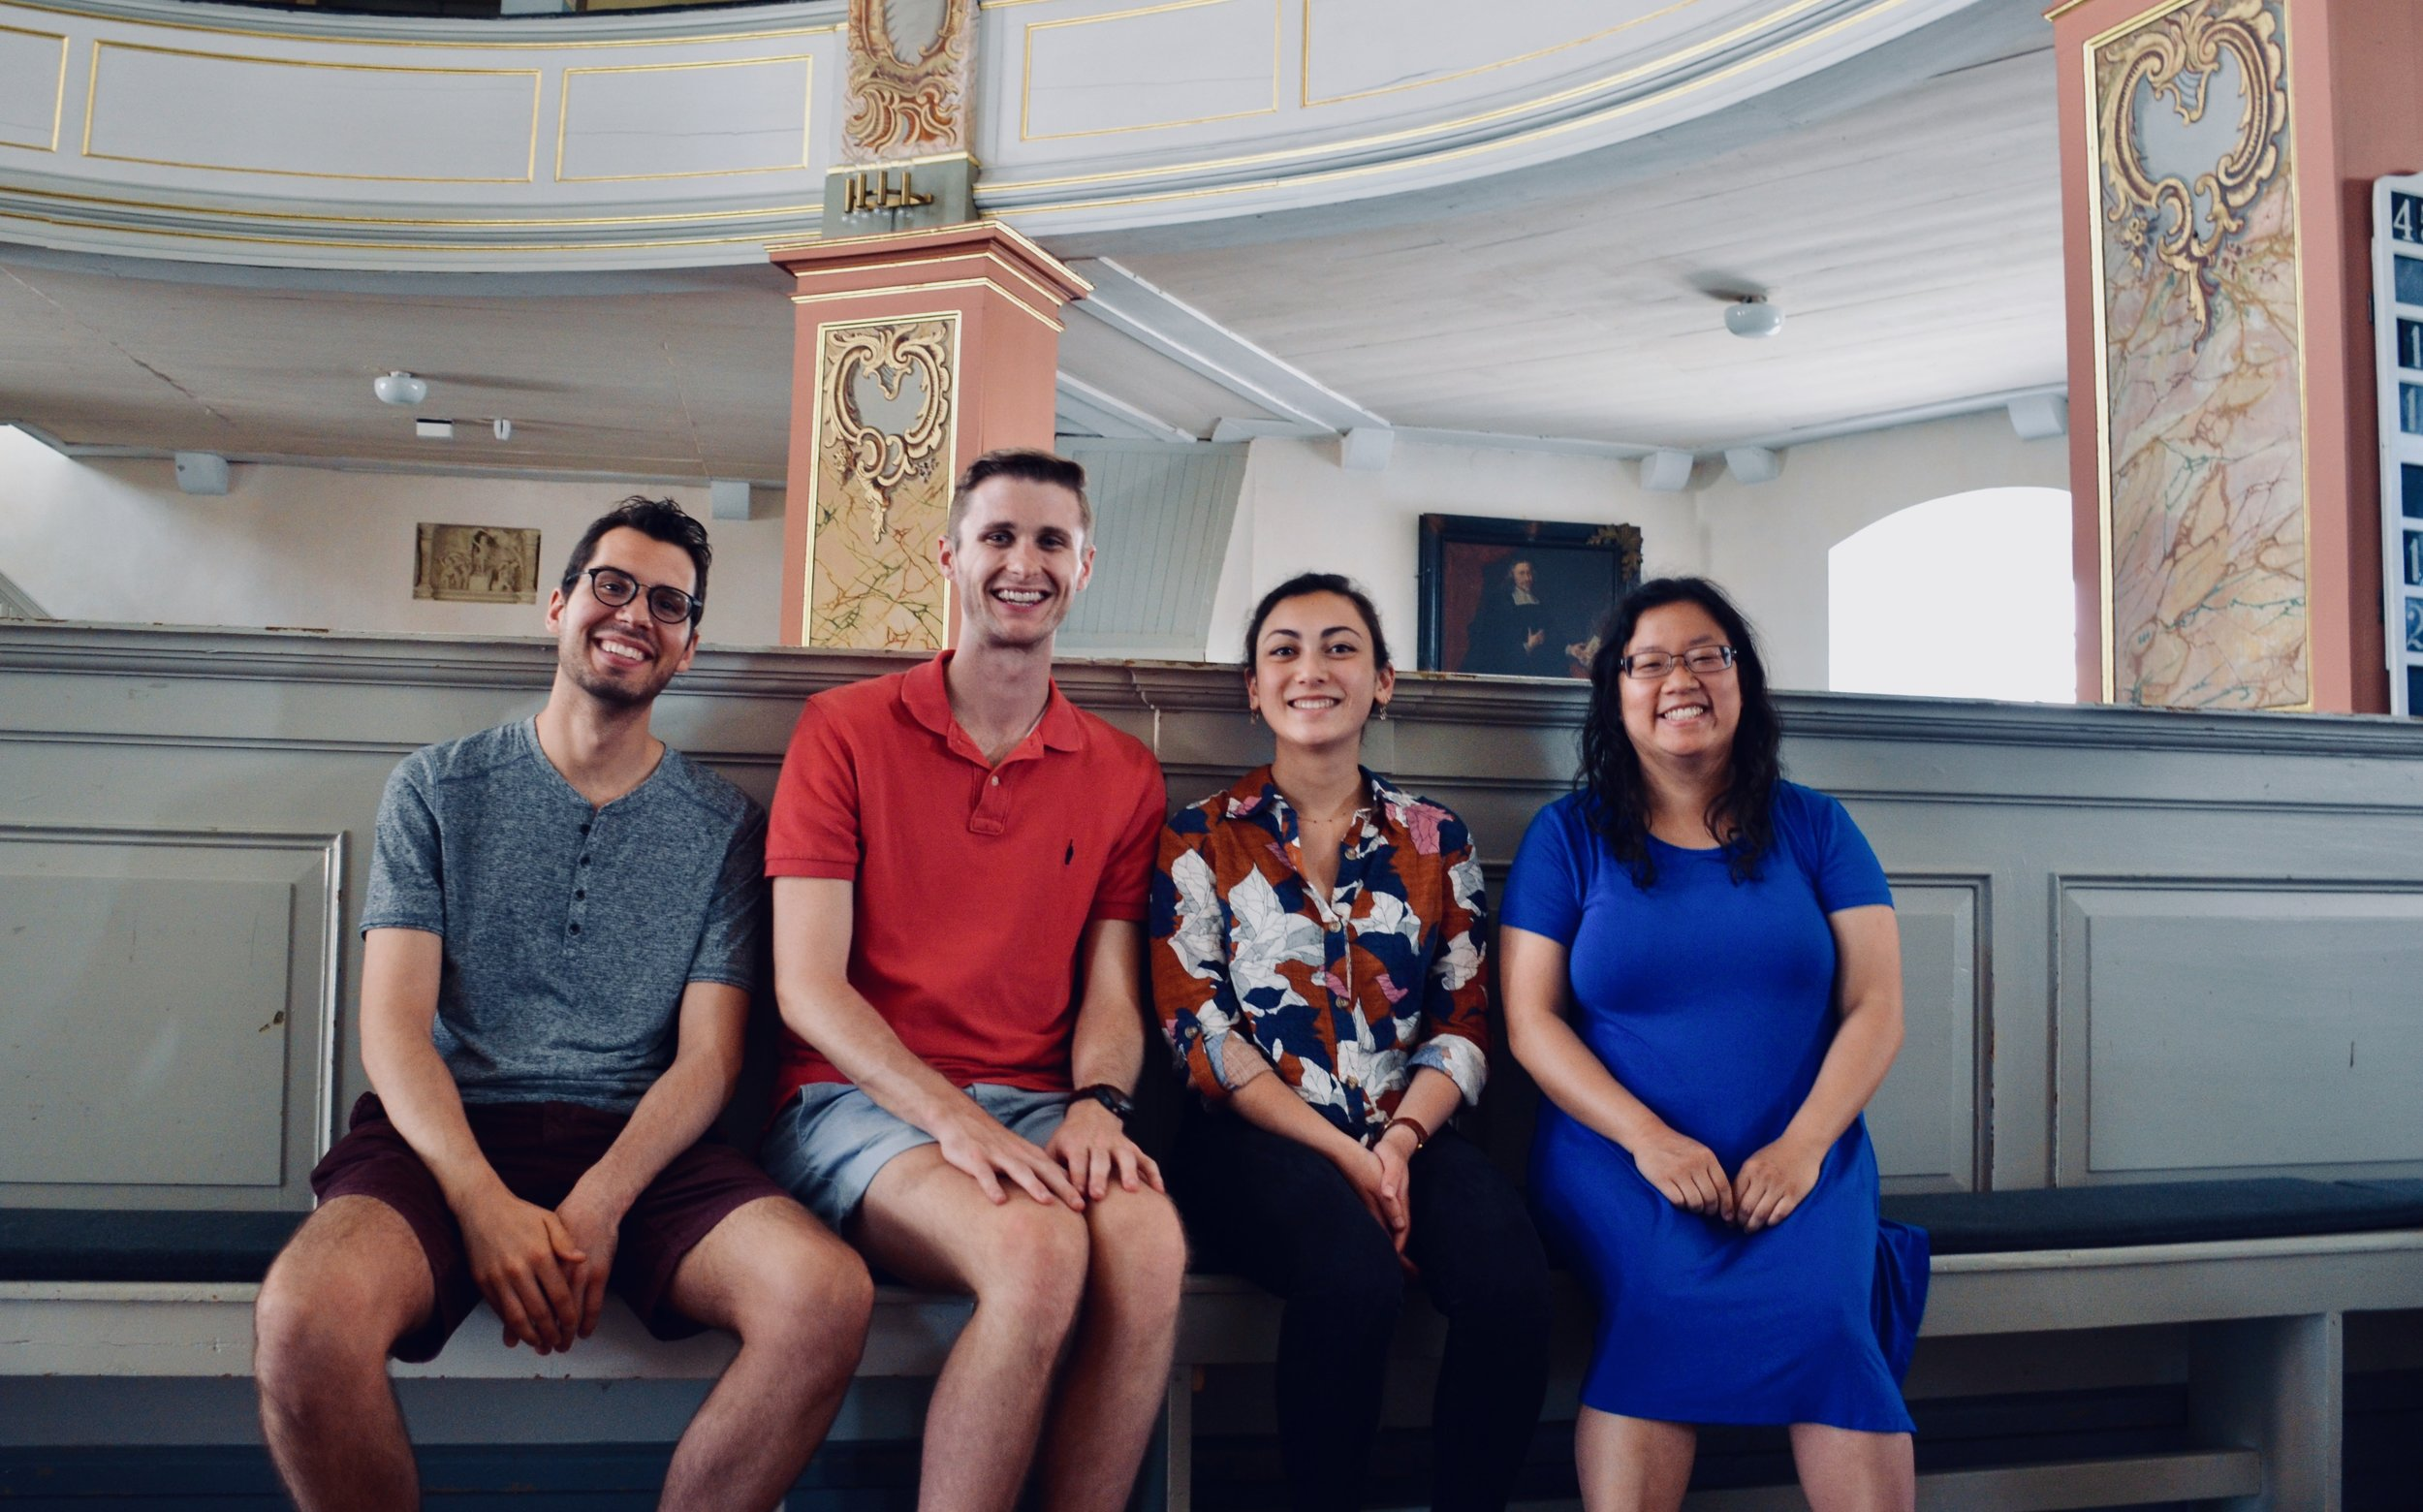 Nick Capozzoli, Evan Currie, Meg Cutting, and Jennifer Hsiao enjoy the sounds of the 1730 Trost Organ, Stadtkirche, Waltershausen.